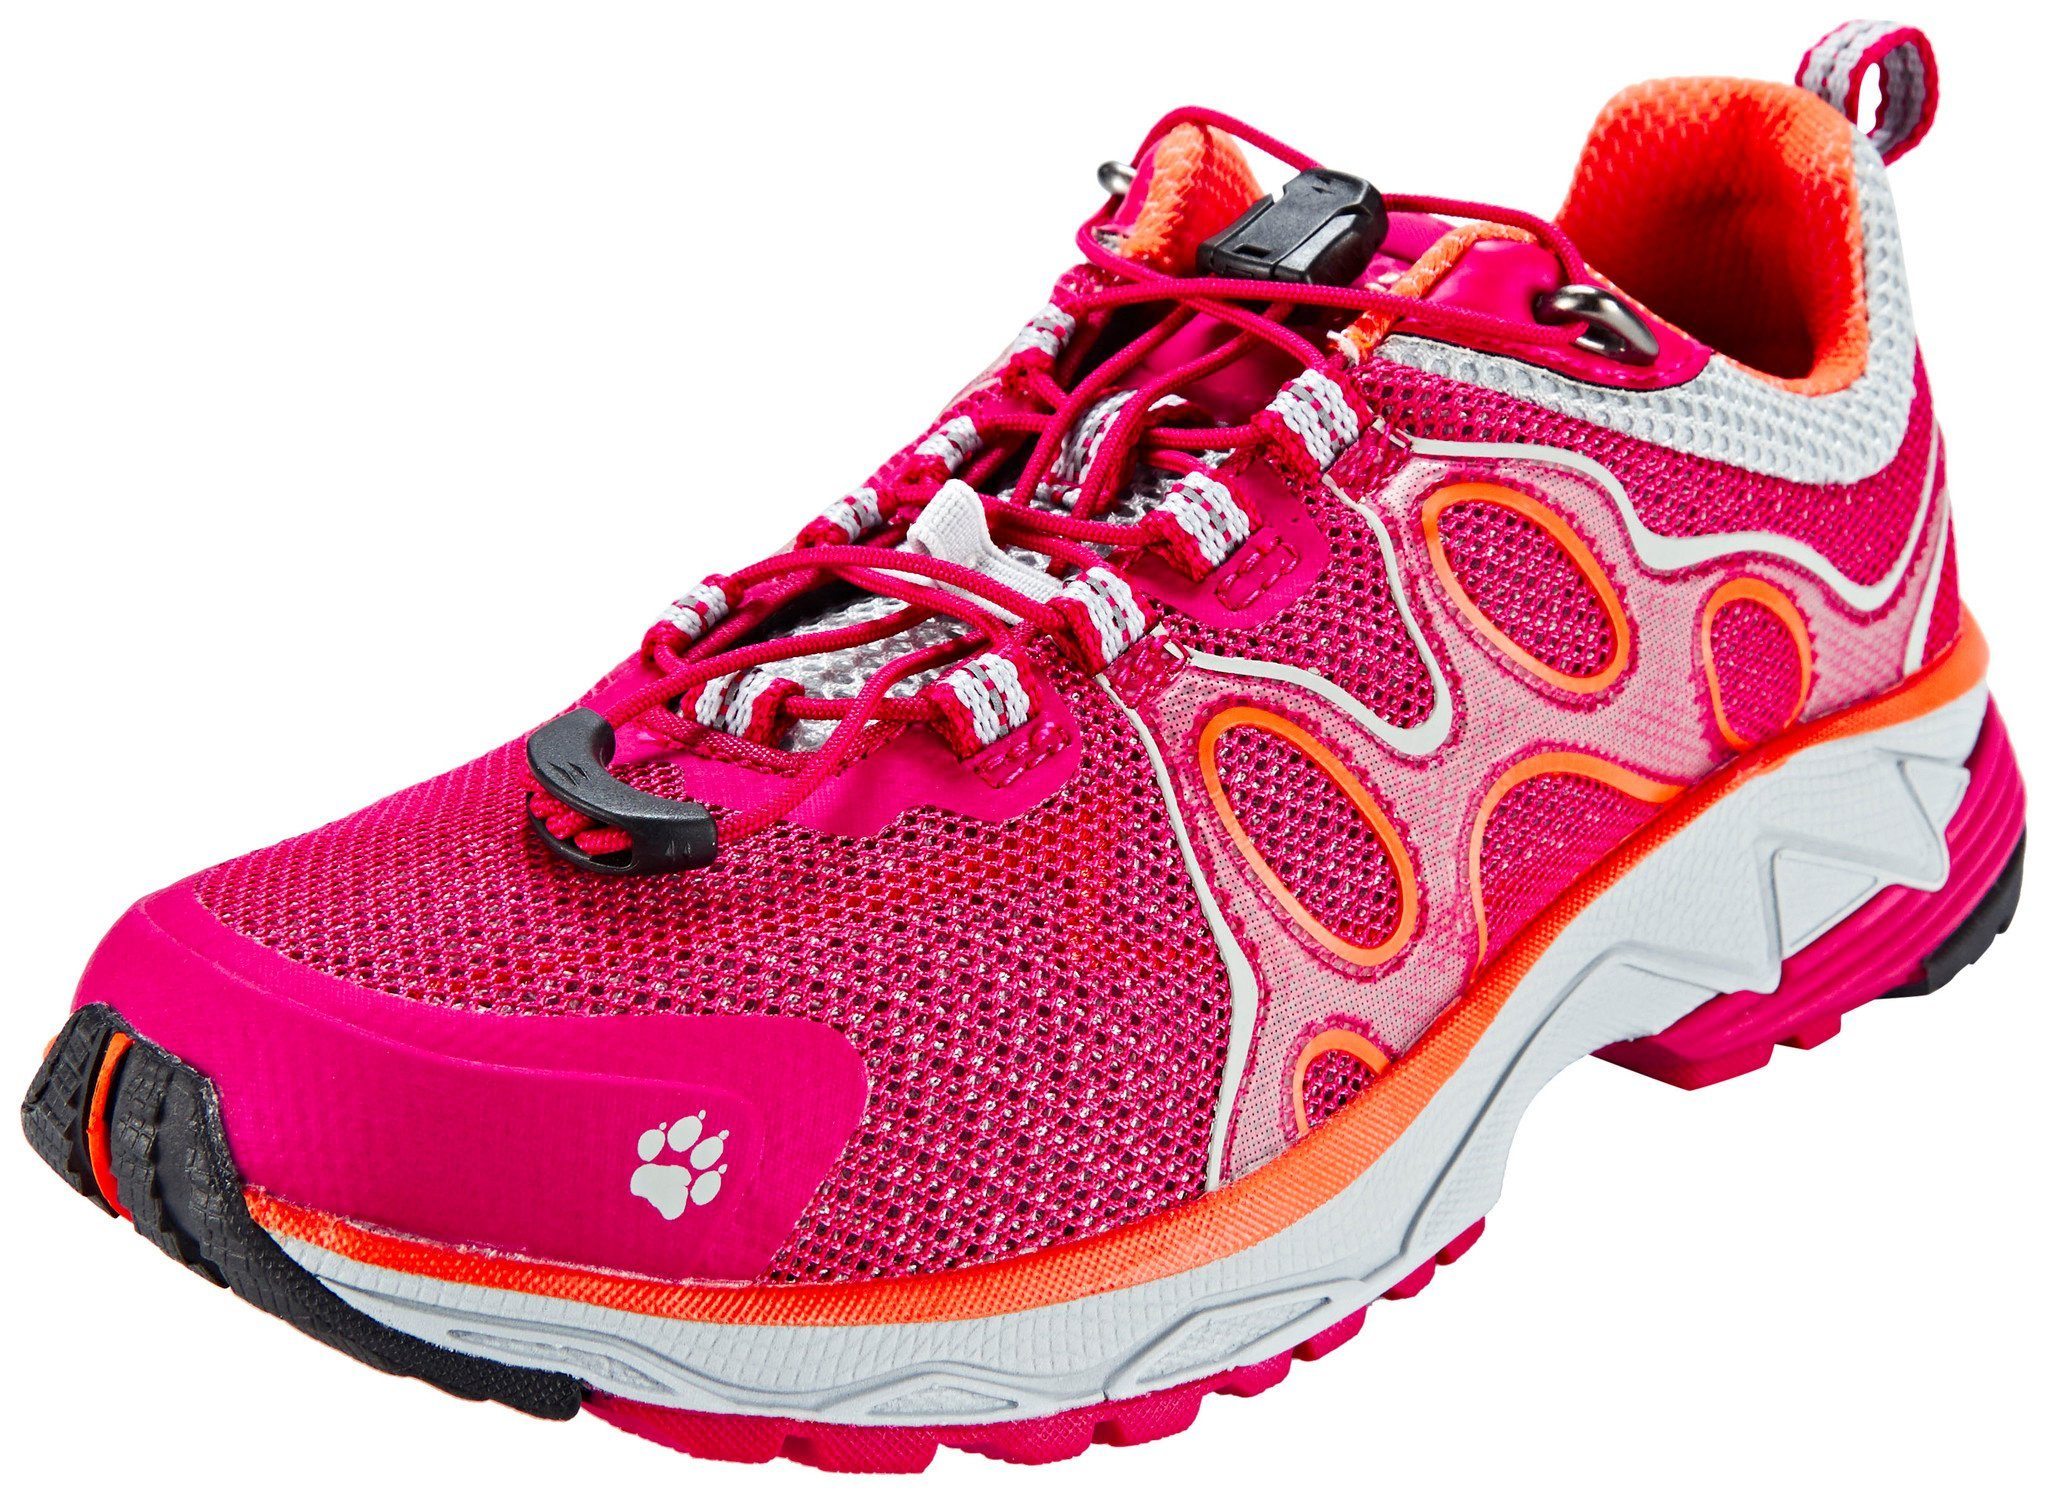 Jack Wolfskin Runningschuh »Passion Trail Low Trailrunning Shoes Women«